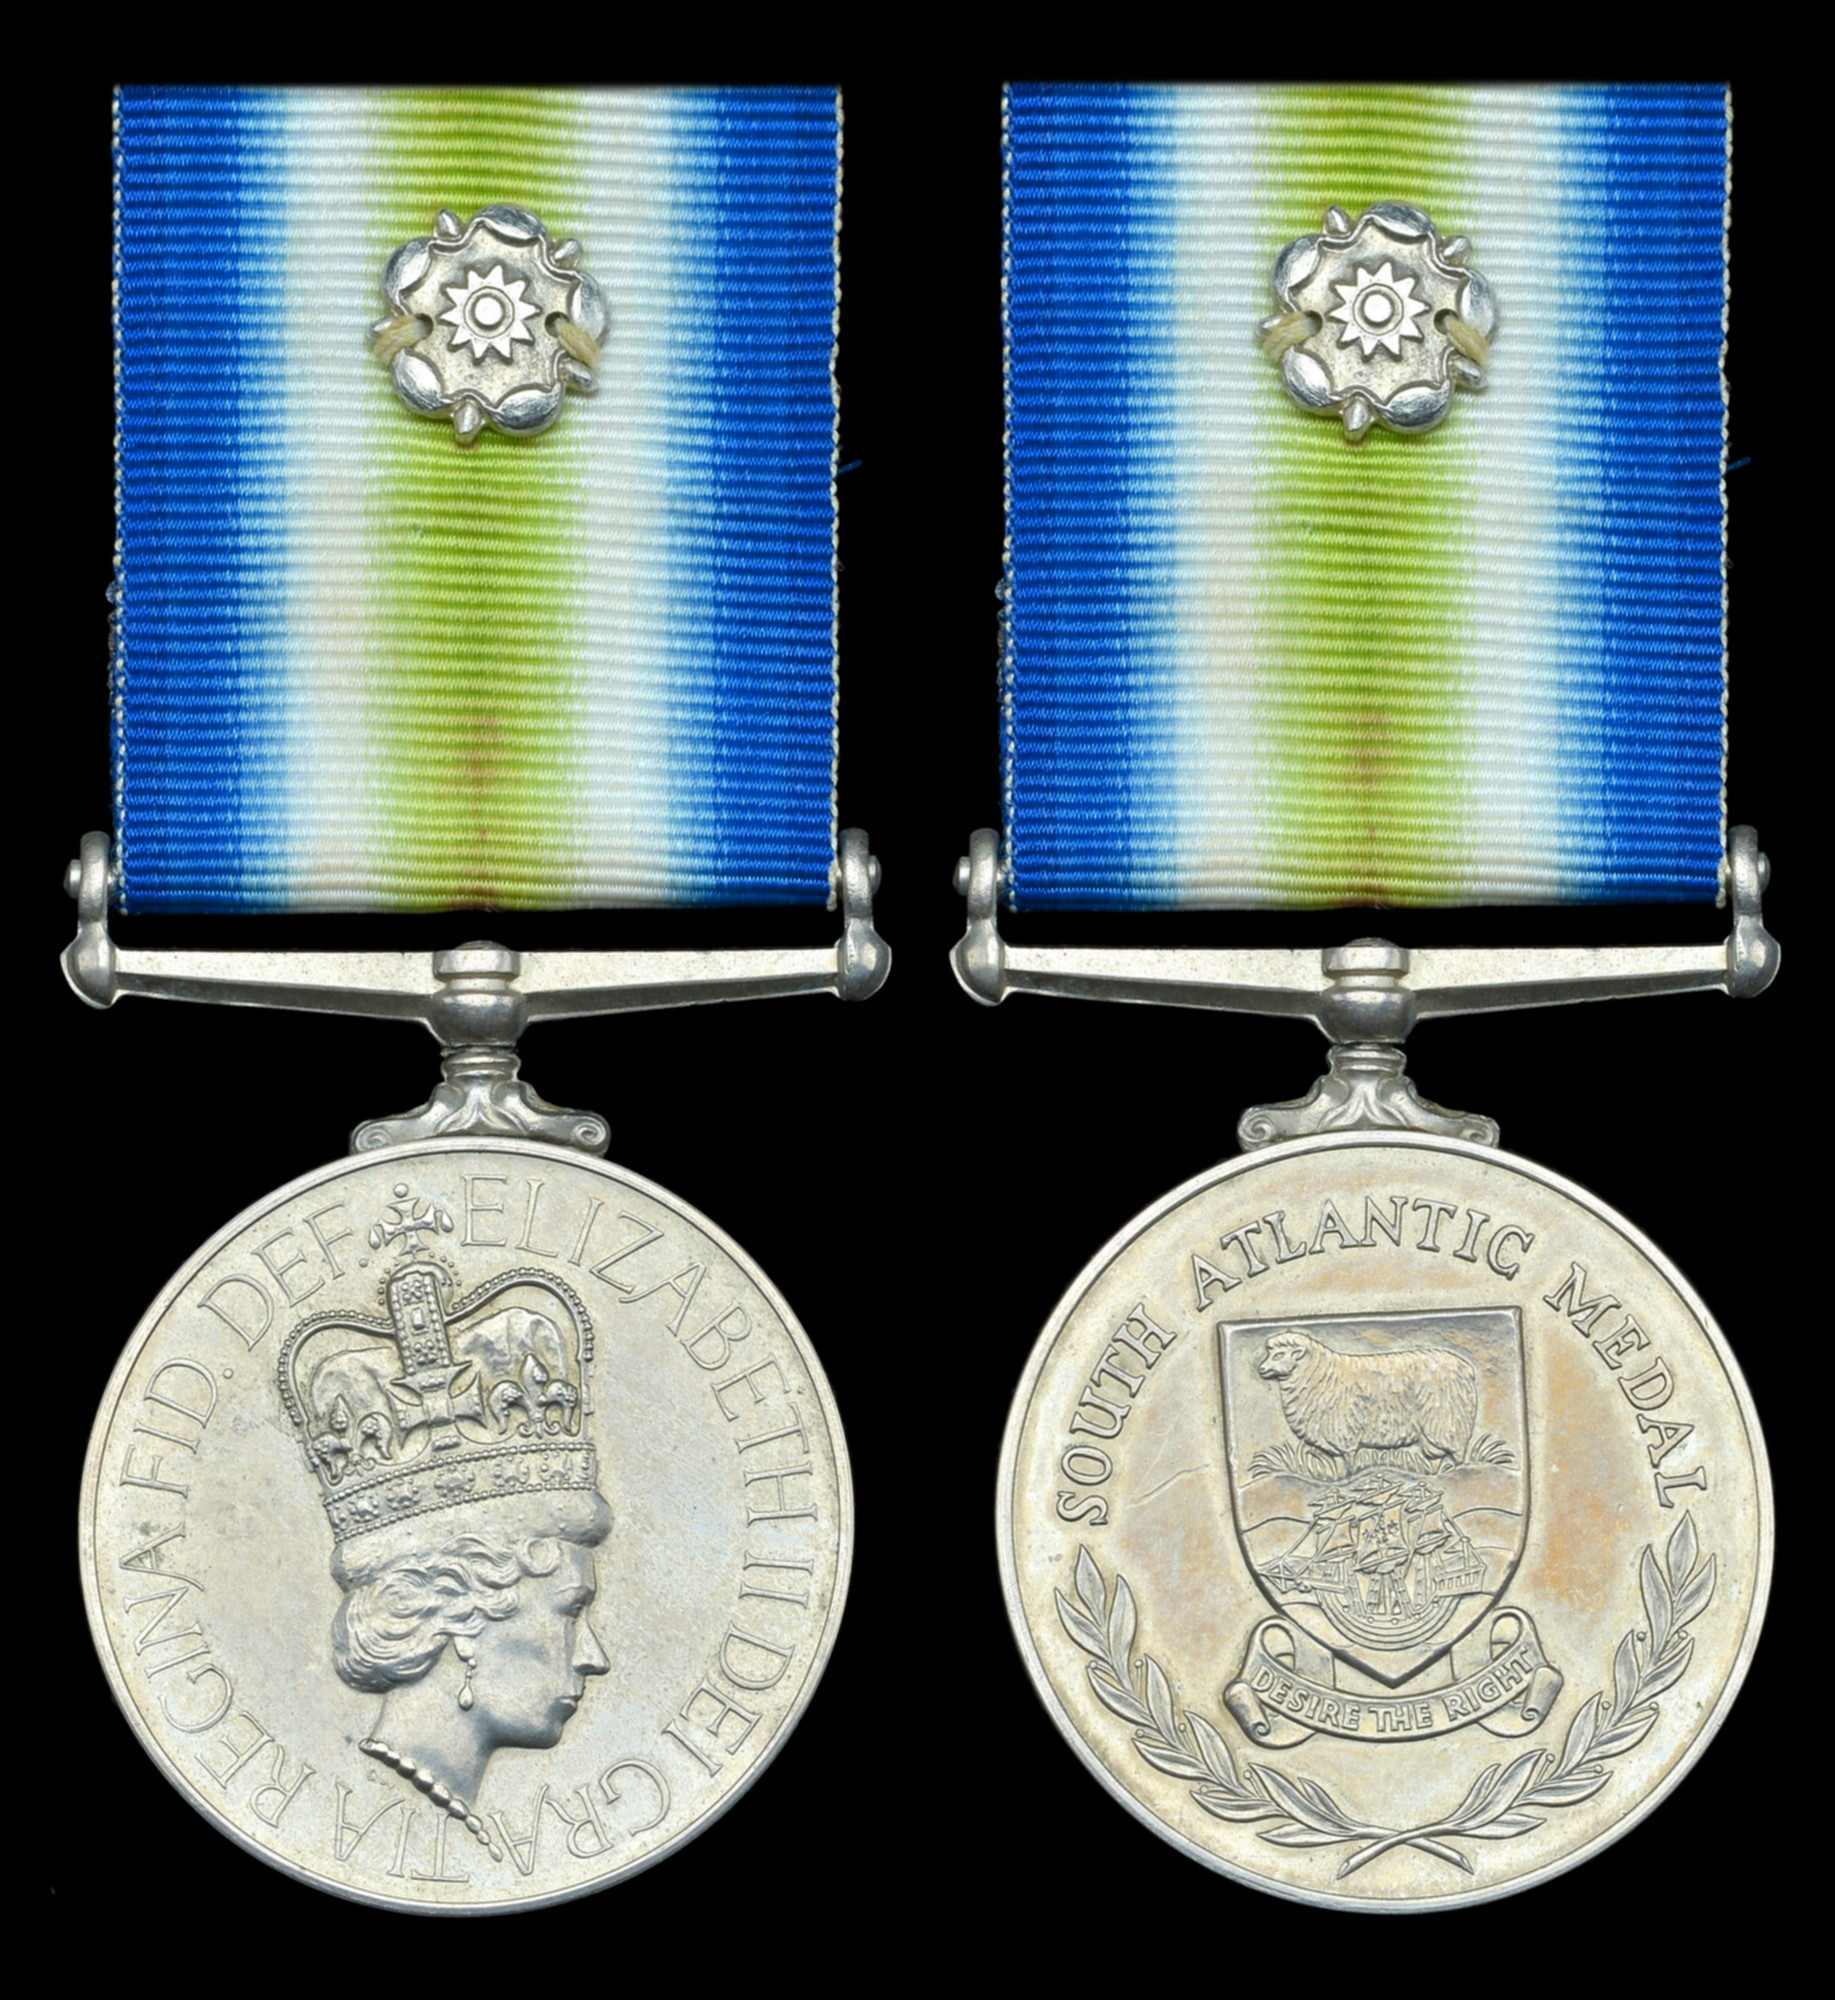 The South Atlantic Medal - obverse and reverse, also showing the white-metal rosette